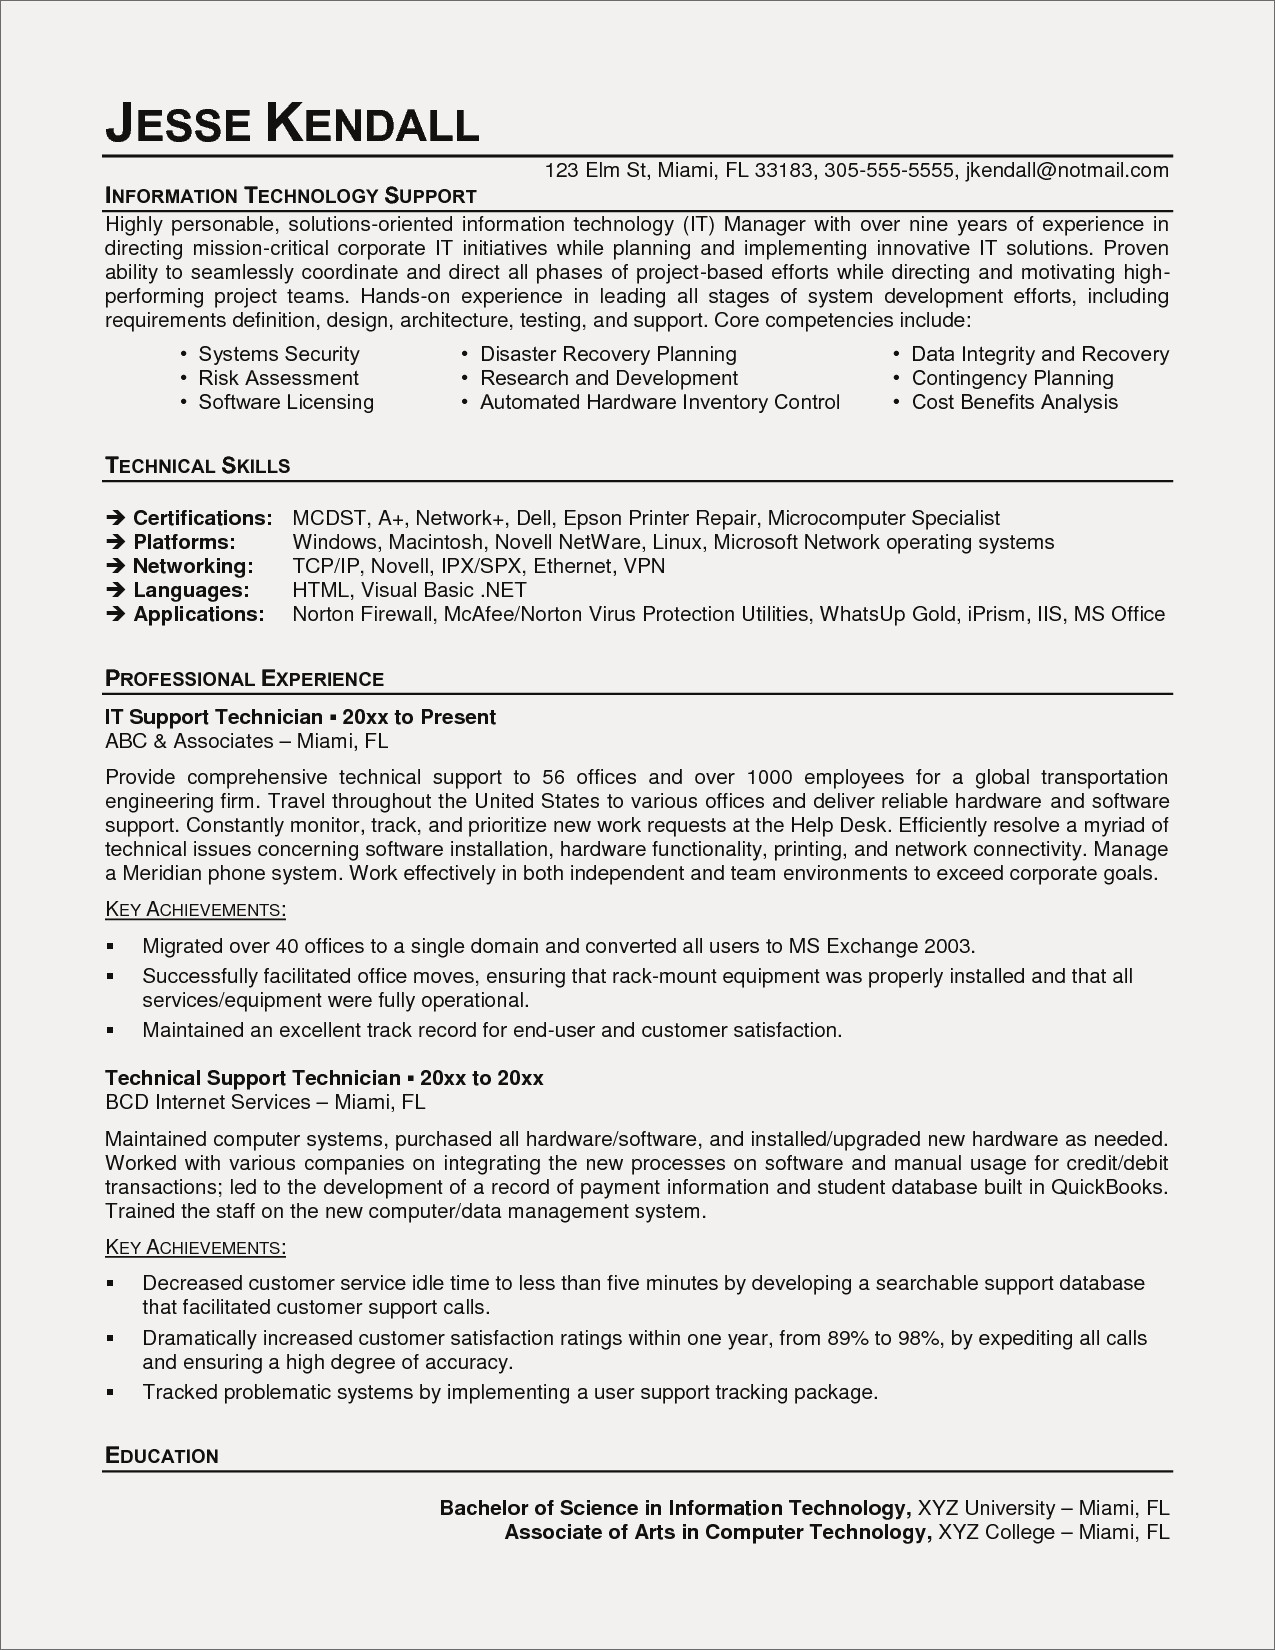 auto service technician resume example-Technician Resume Examples New Auto Mechanic Resume American Resume Sample New Student Resume 0d 20-j